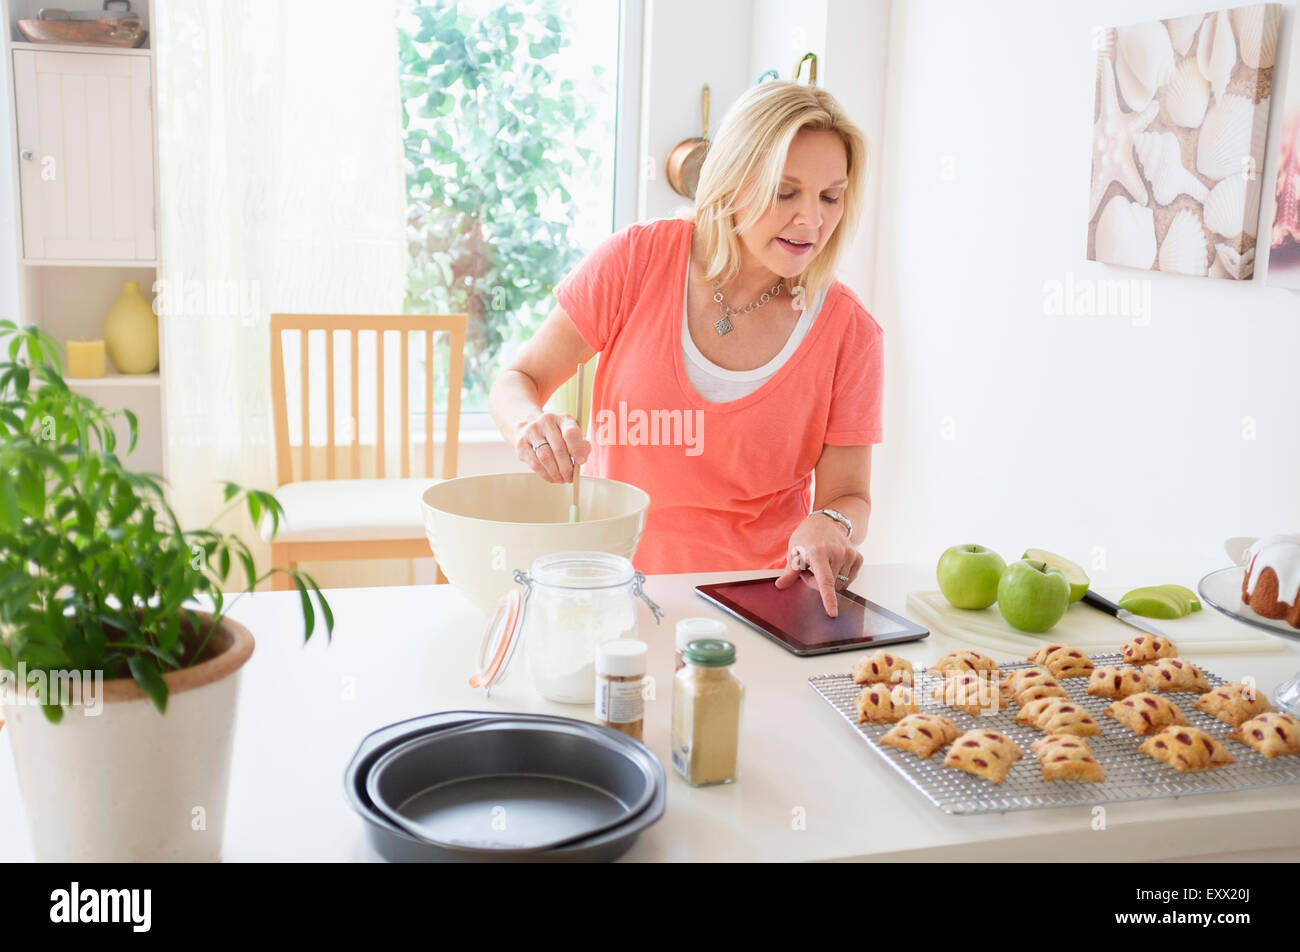 Young woman baking in kitchen Photo Stock